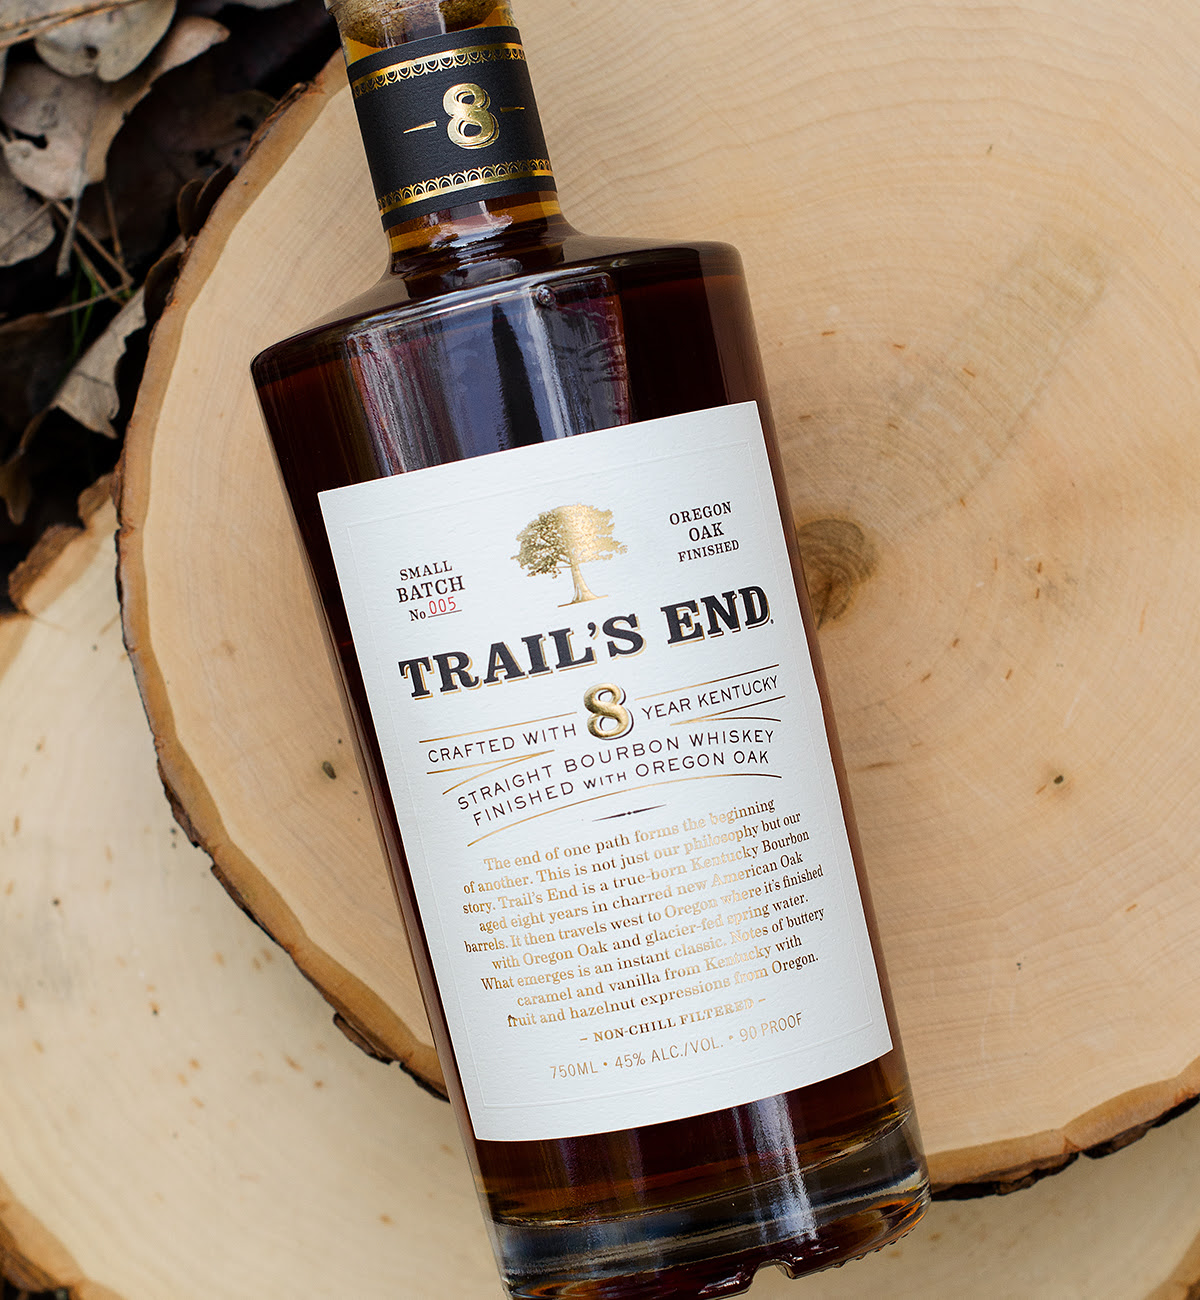 image of Trail's End Whiskey courtesy of Hood River Distiller